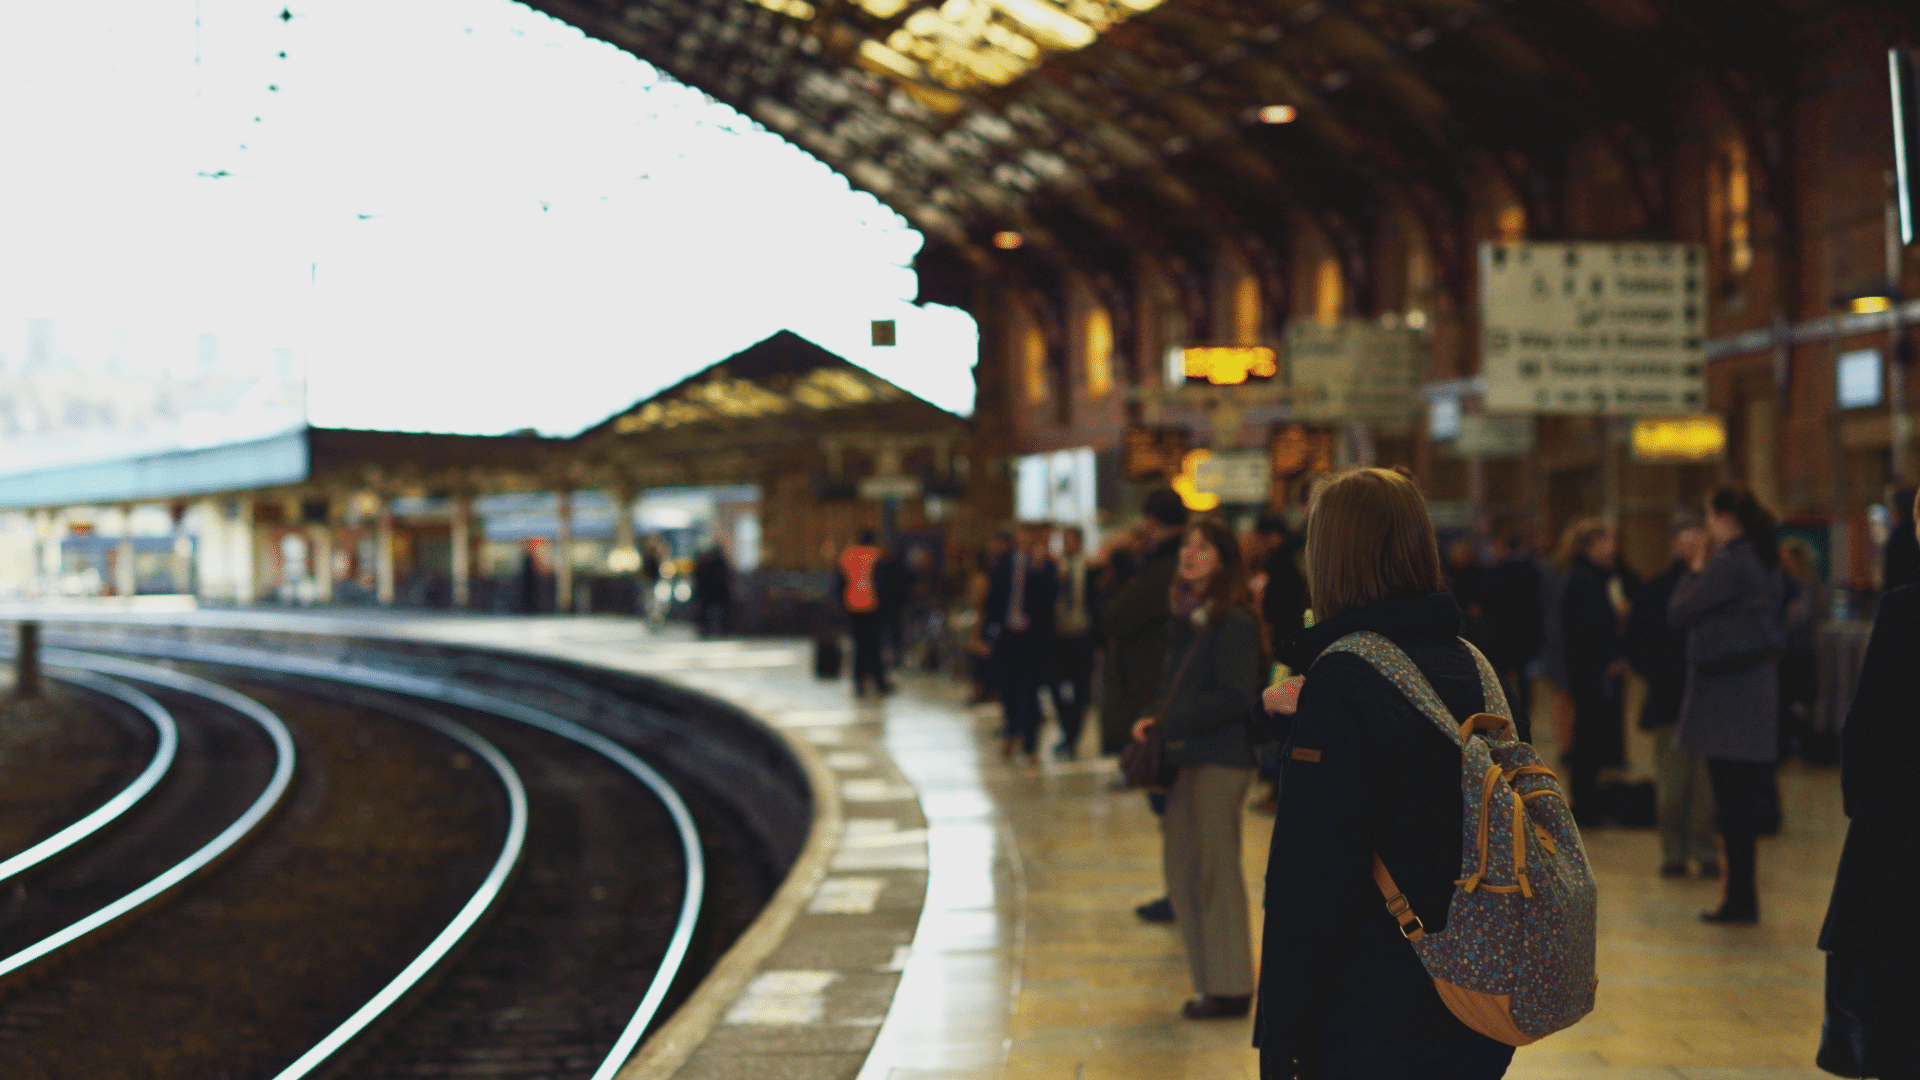 Photo of Bristol Temple Meads platform with people waiting for the train